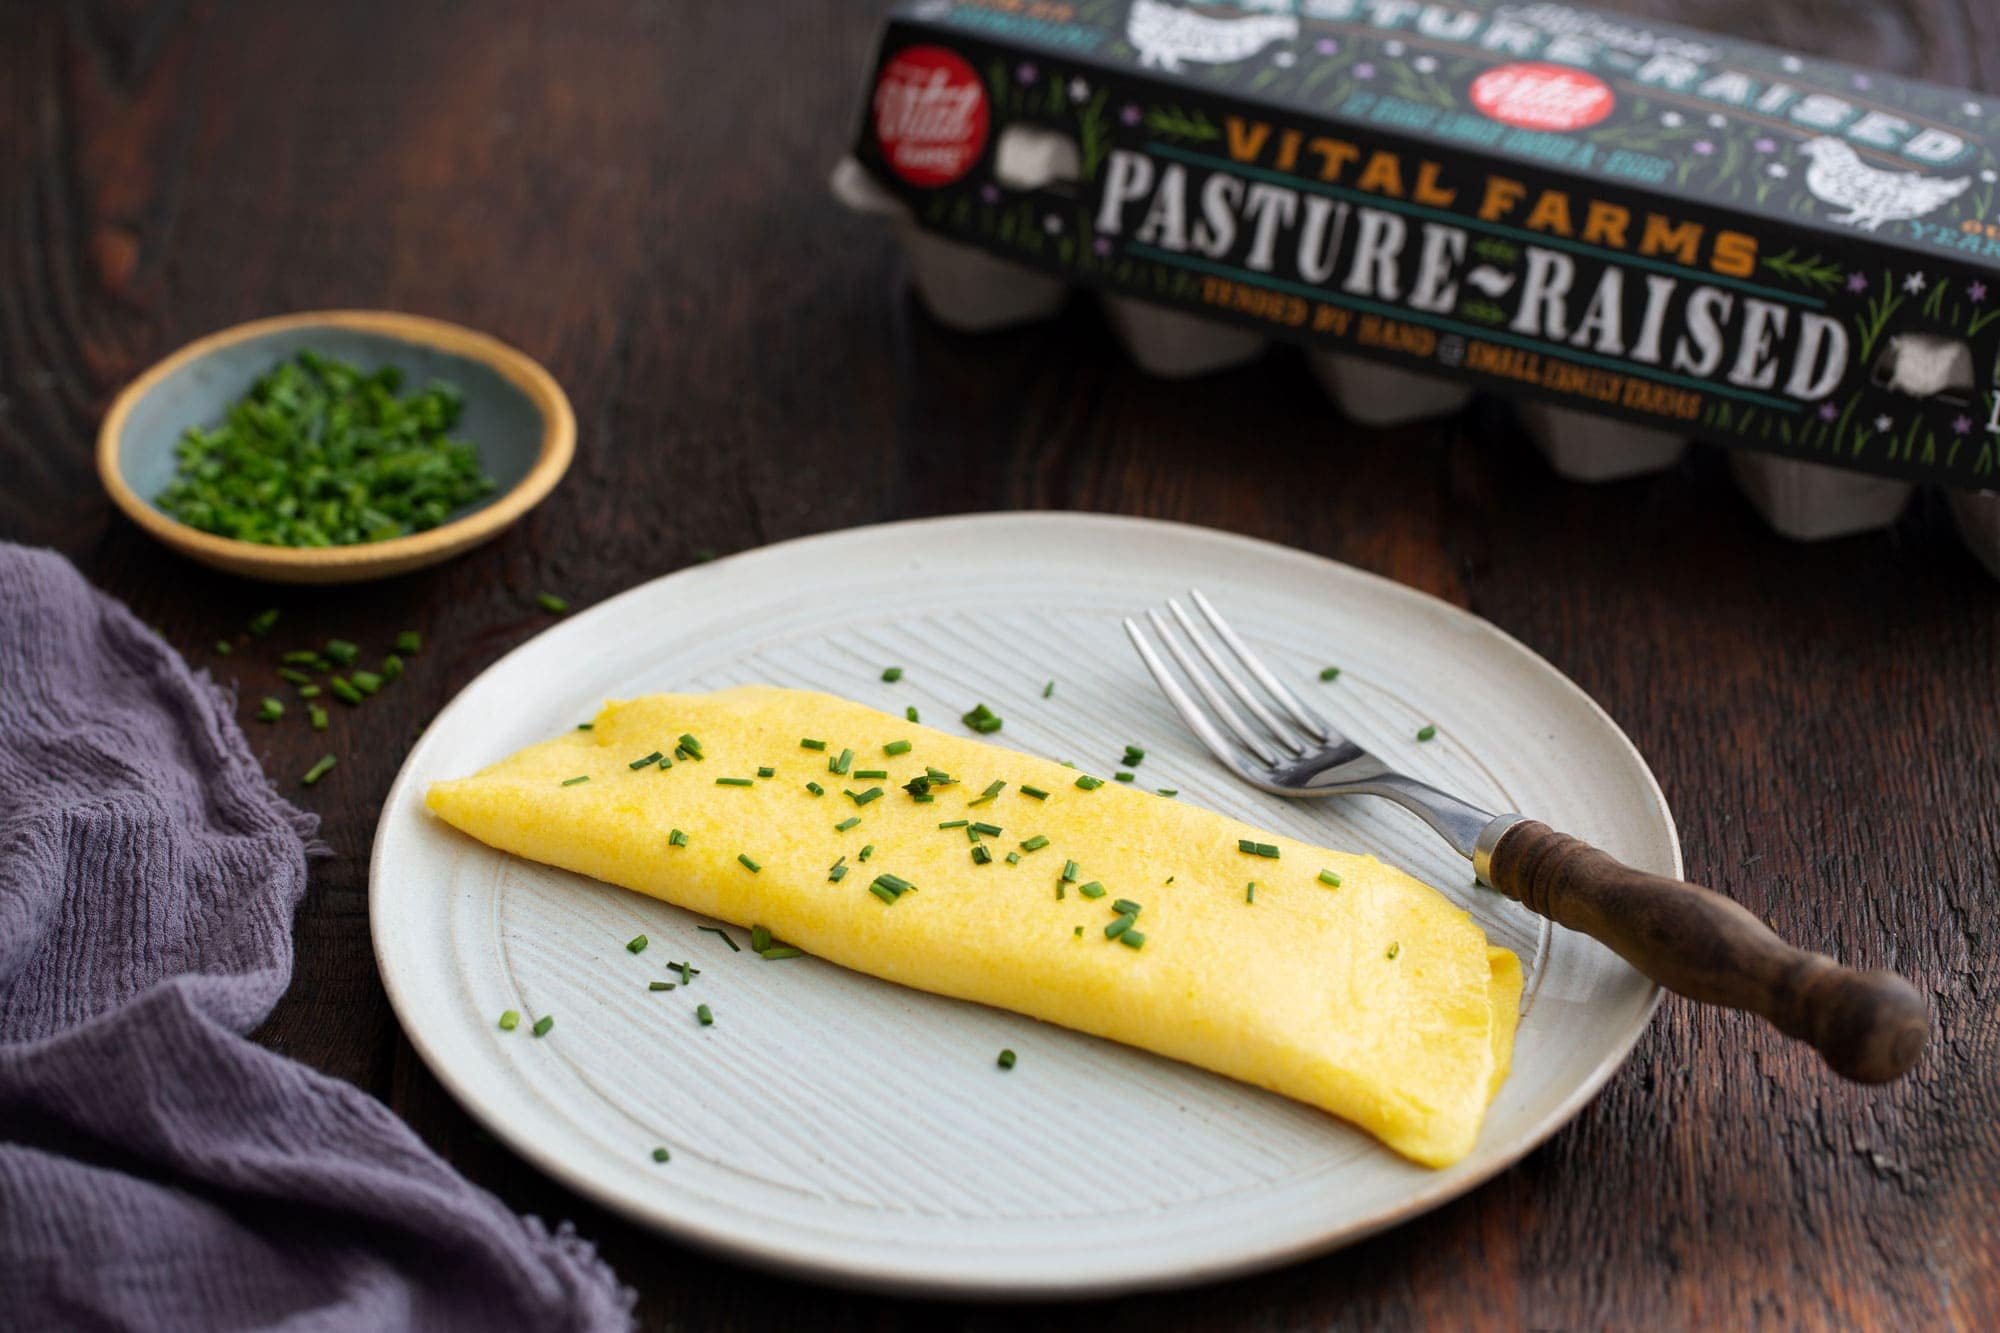 A beautiful looking omelet folded on a plate and sprinkled with chives. In the background there is a carton of pasture raised eggs.